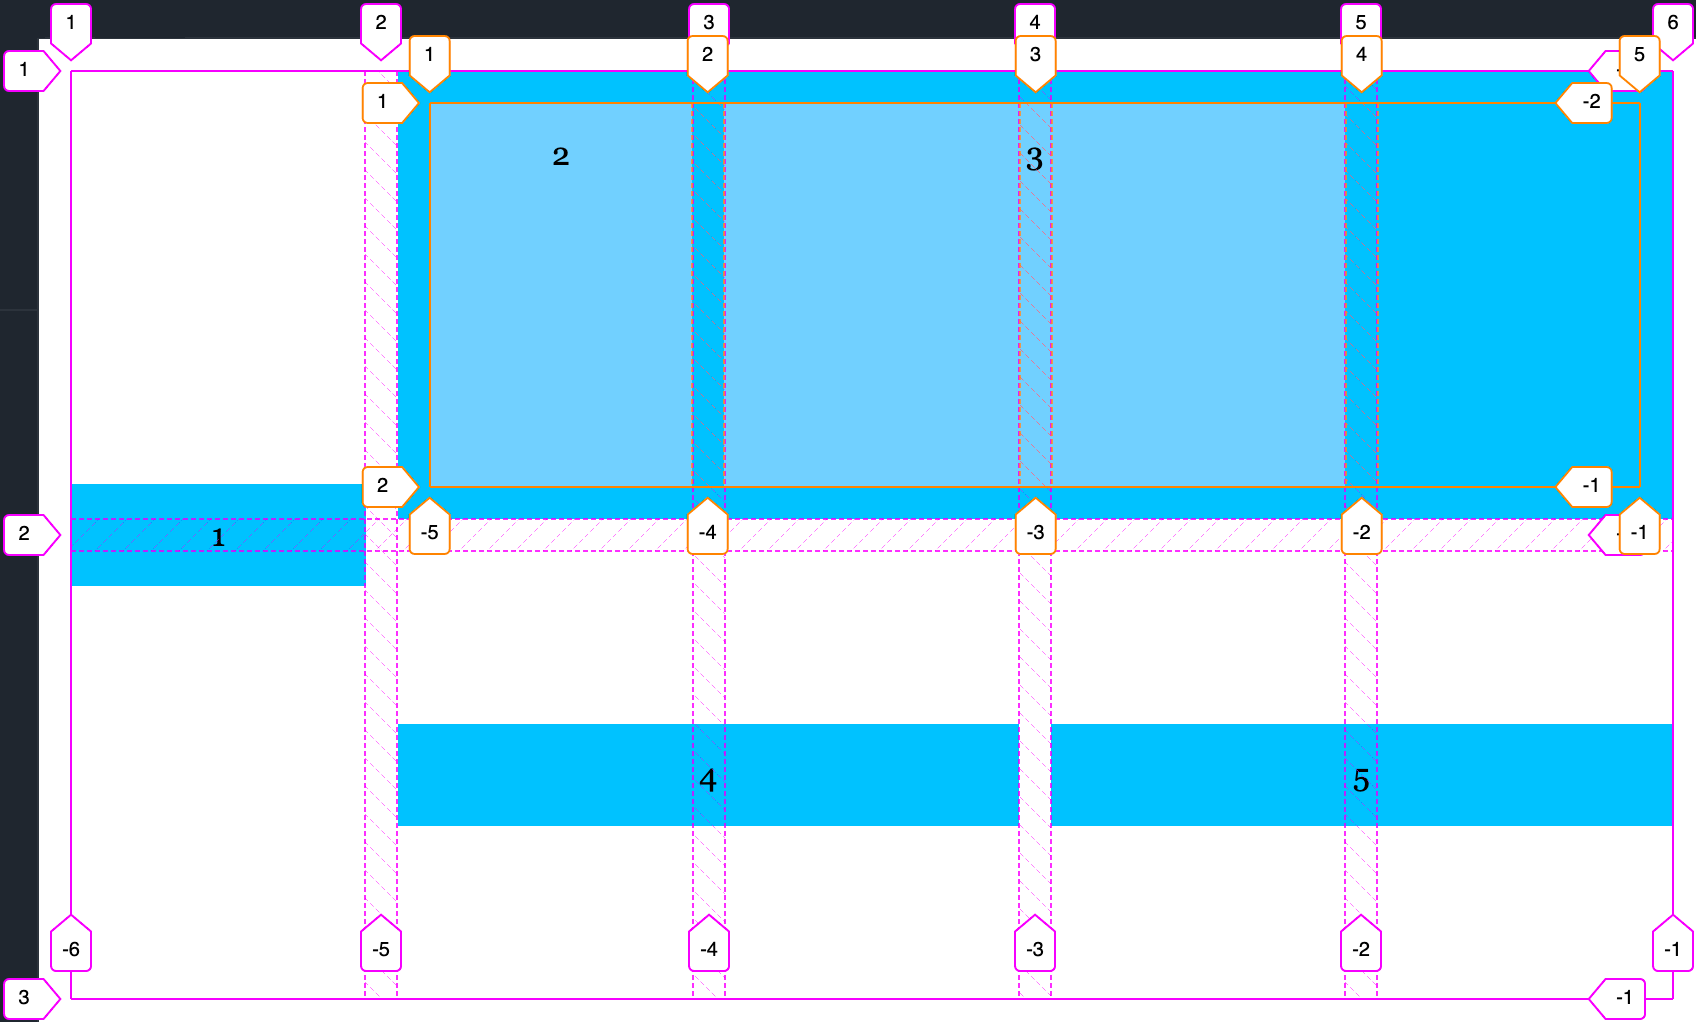 Self-alignment properties on subgrid container do not apply